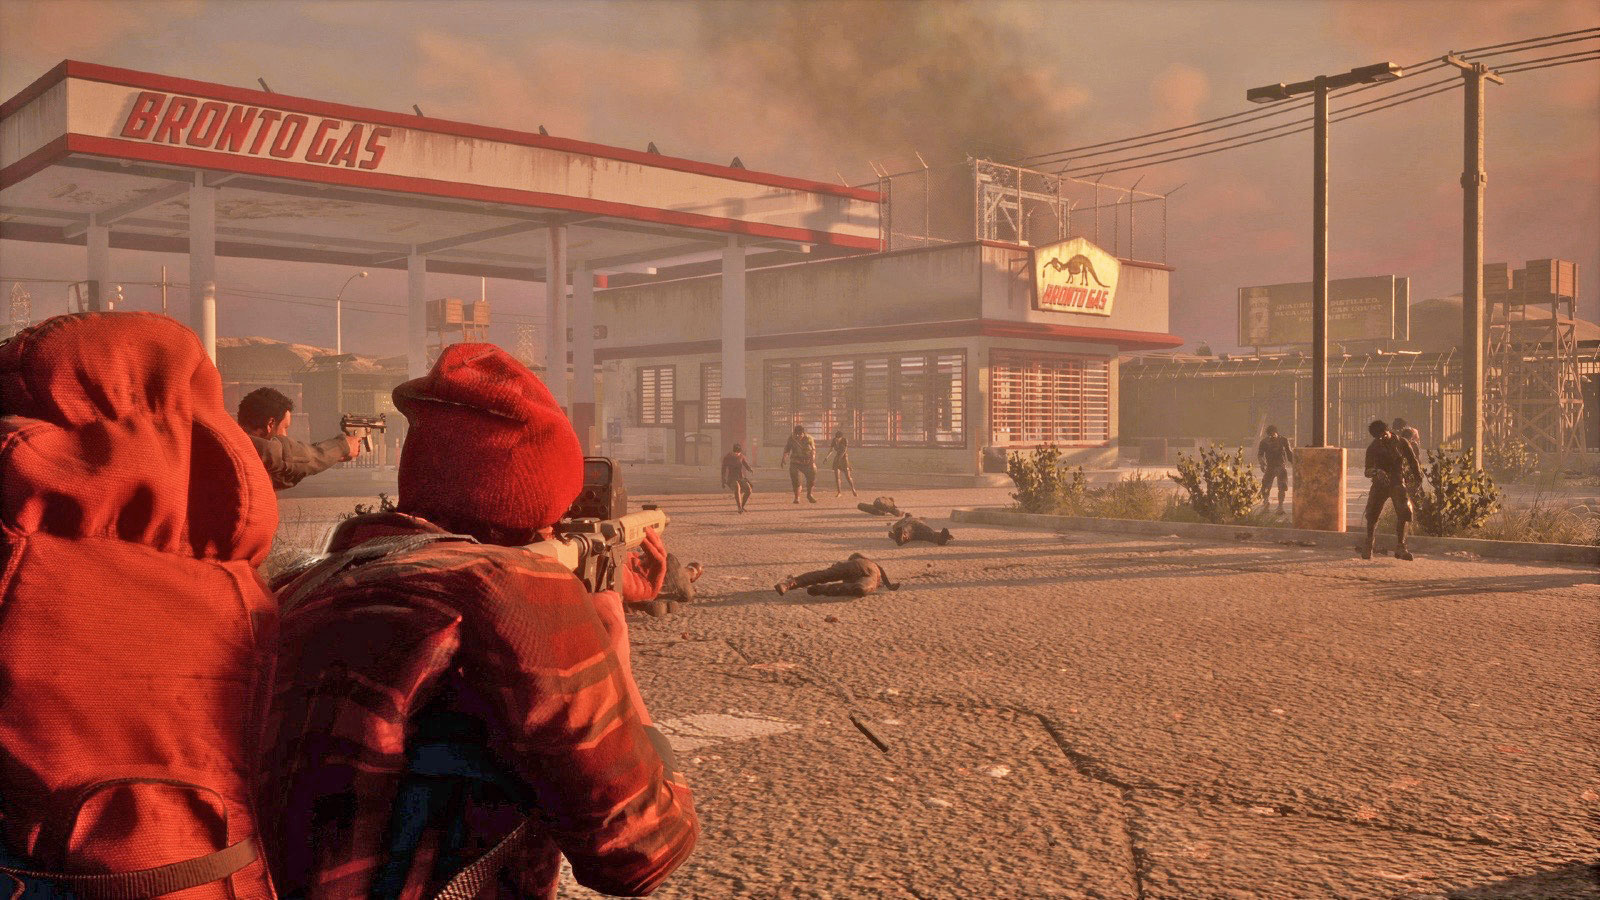 39 State Of Decay 2 39 Brings A Zombie Horde To Xbox On May 22nd